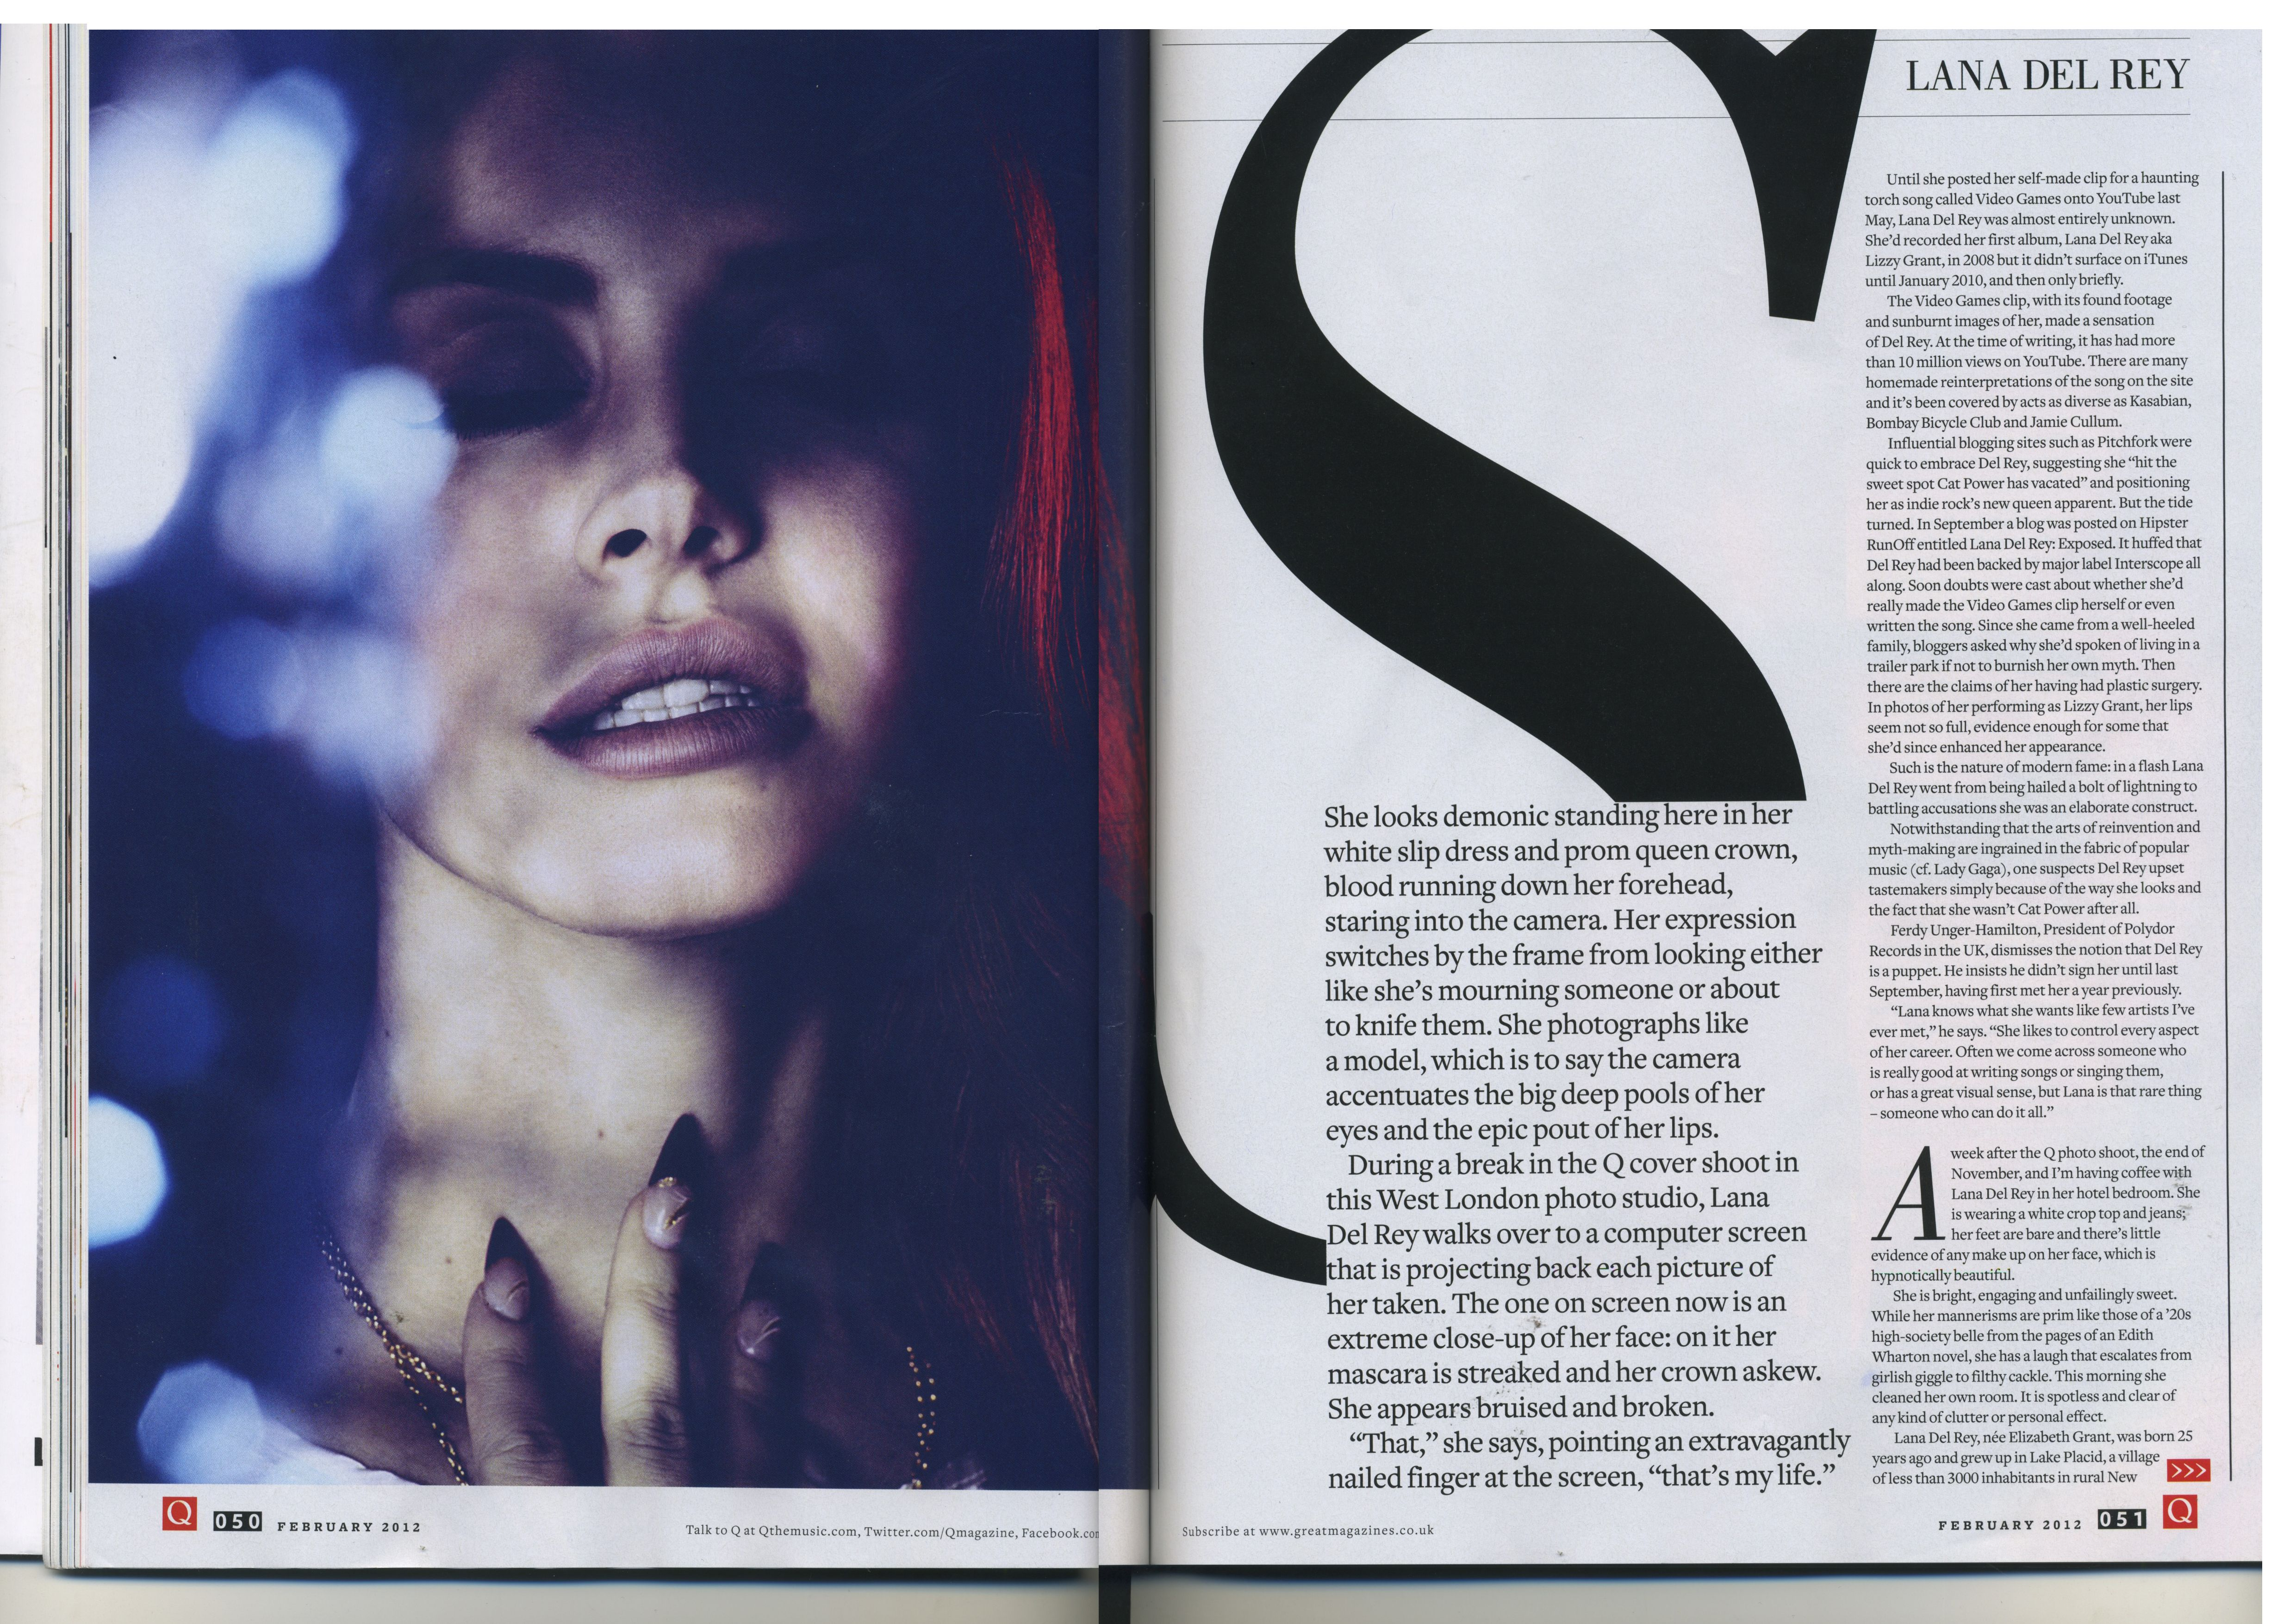 Double page spread magazine any more